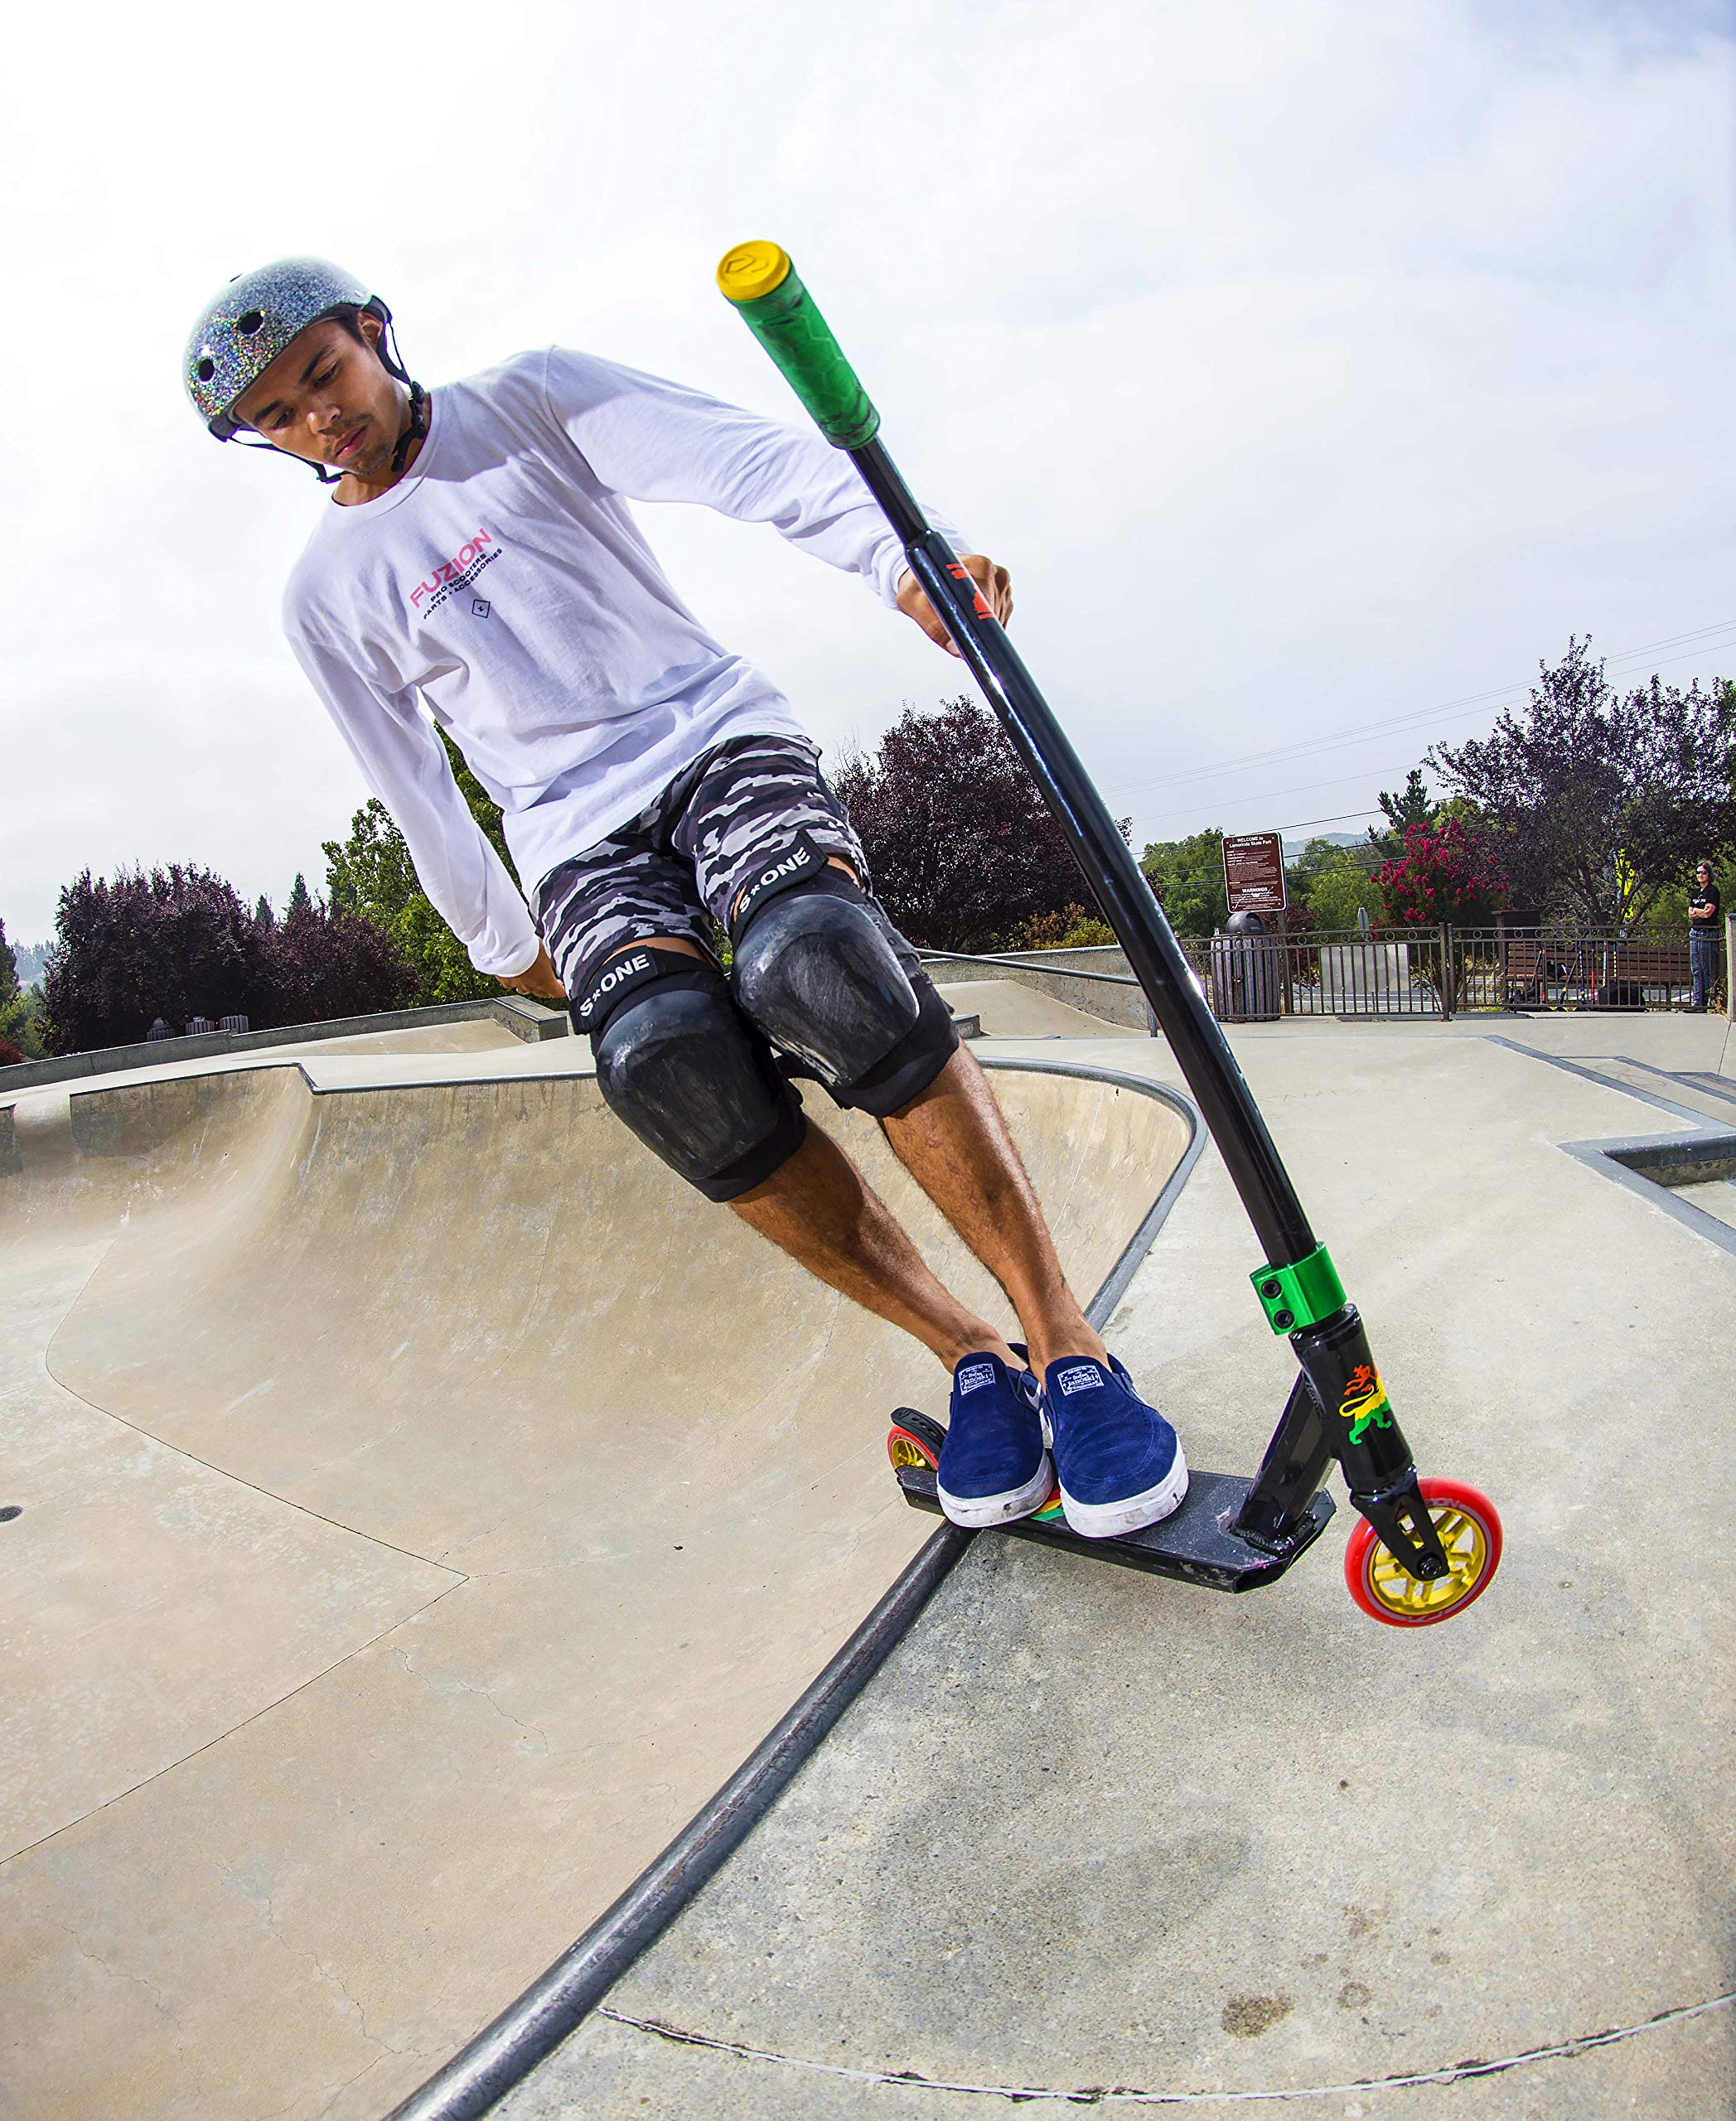 Fuzion Z250 Pro Scooters - Trick Scooter - Intermediate and Beginner Stunt Scooters for Kids 8 Years and Up, Teens and Adults – Durable Freestyle Kick Scooter for Boys and Girls (2019 Rasta) by Fuzion (Image #3)